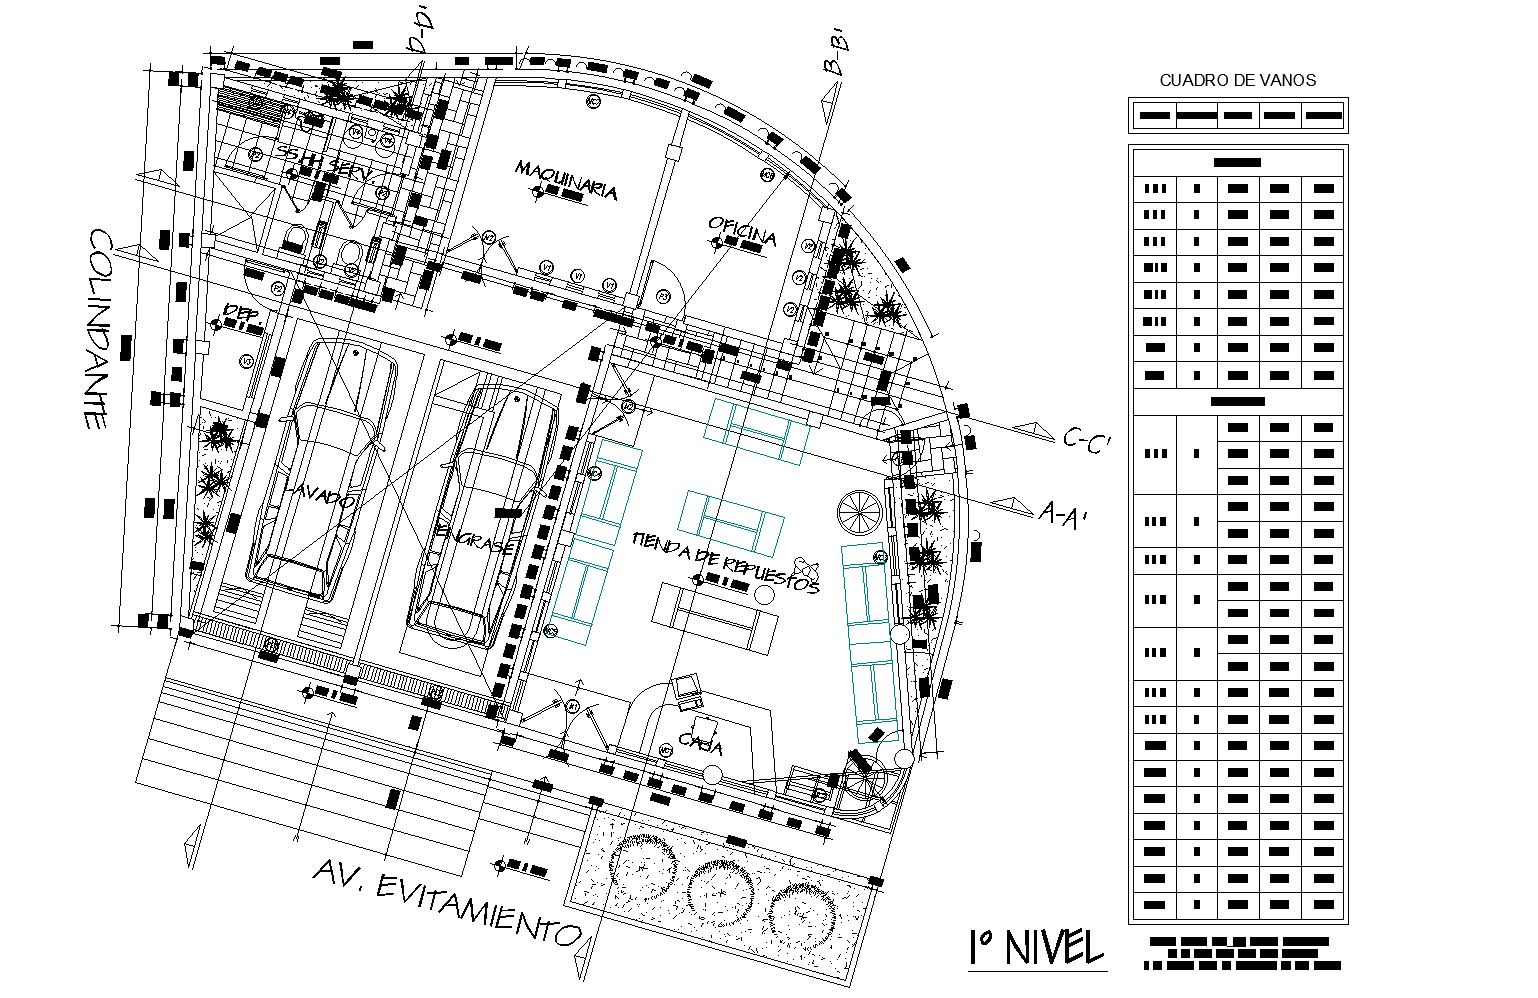 Multi-brand automobile sales and service plan detail dwg file.